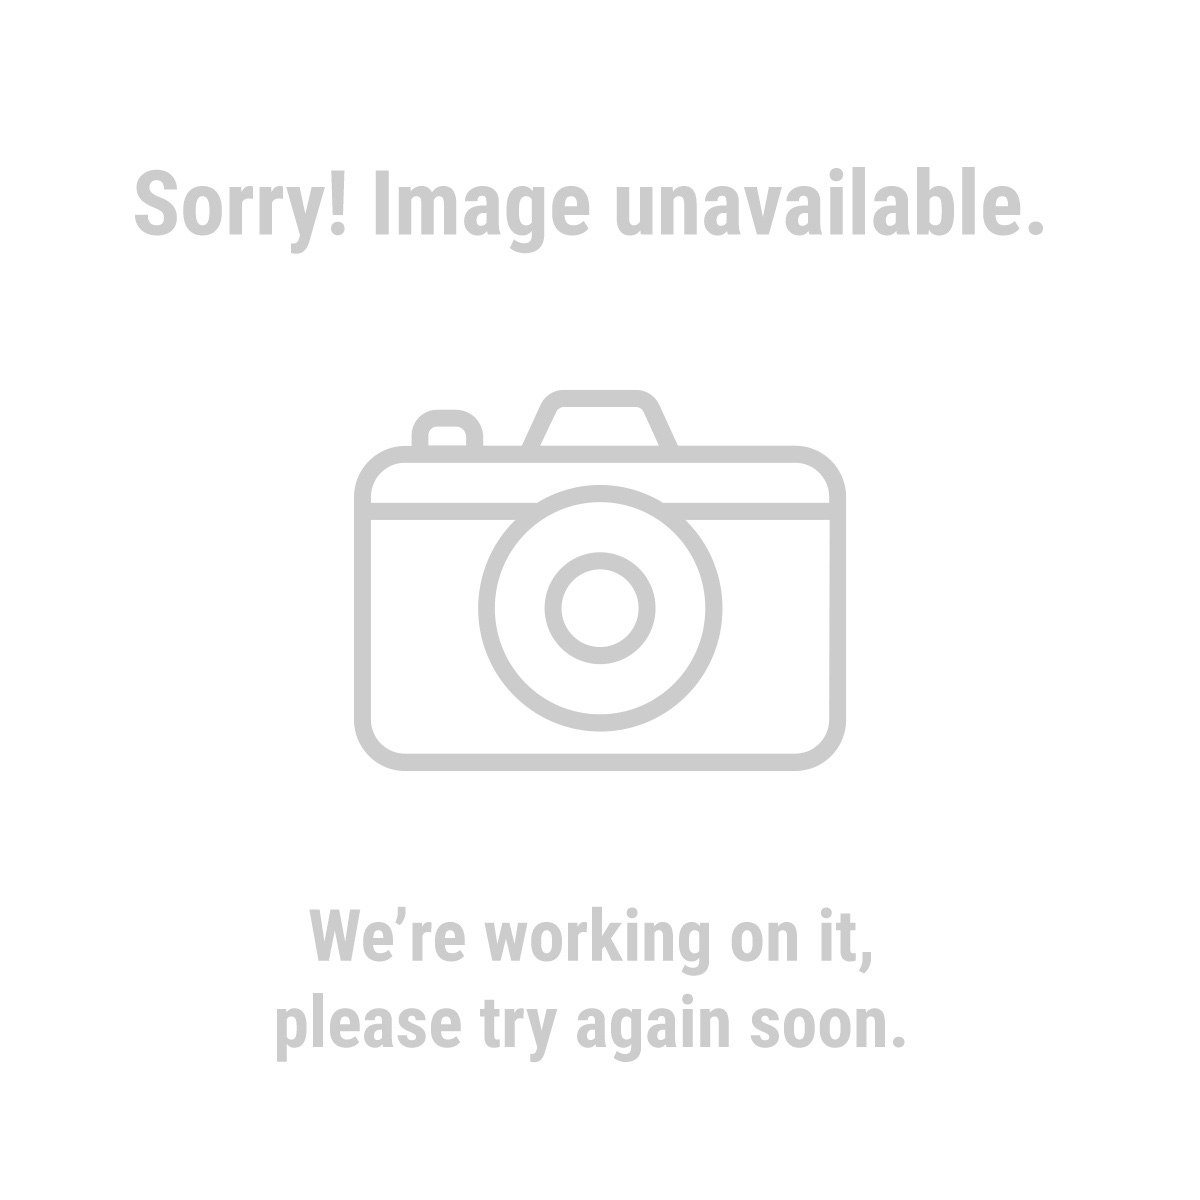 HFT 60273 50 Ft. x 12 Gauge Outdoor Extension Cord